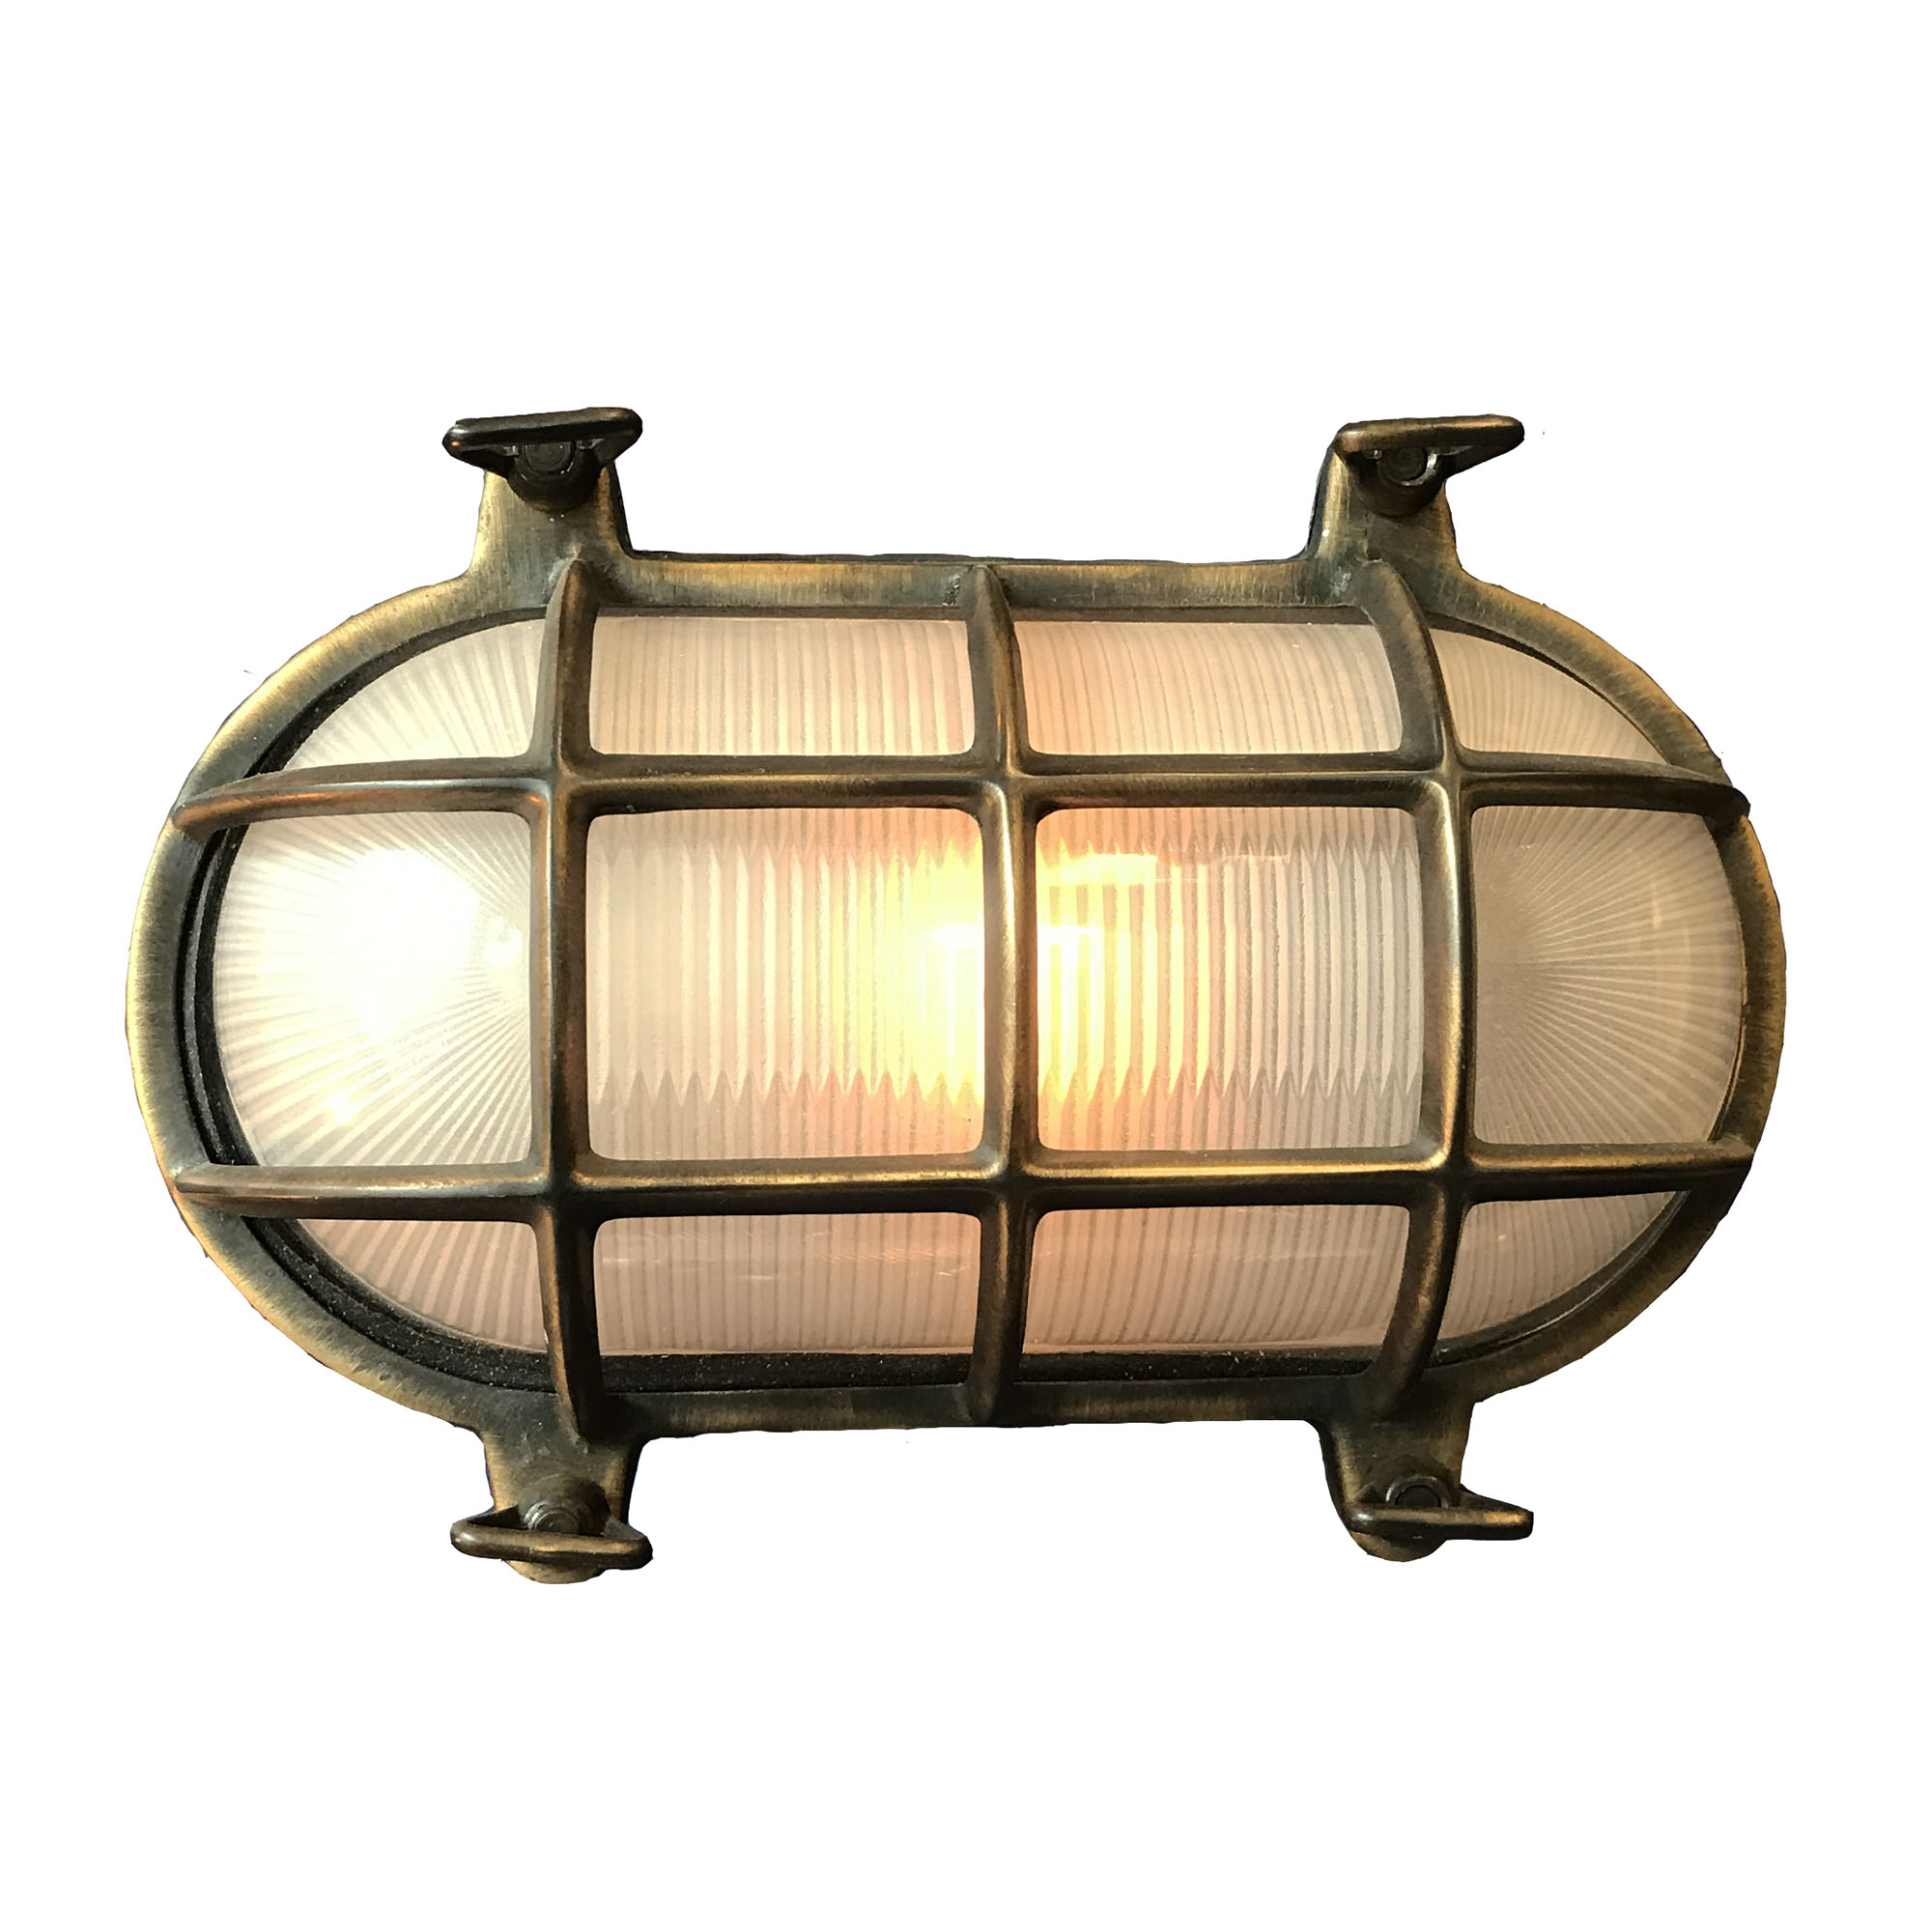 Superb oval polished ship bulk head passageway wall light nautical lamp